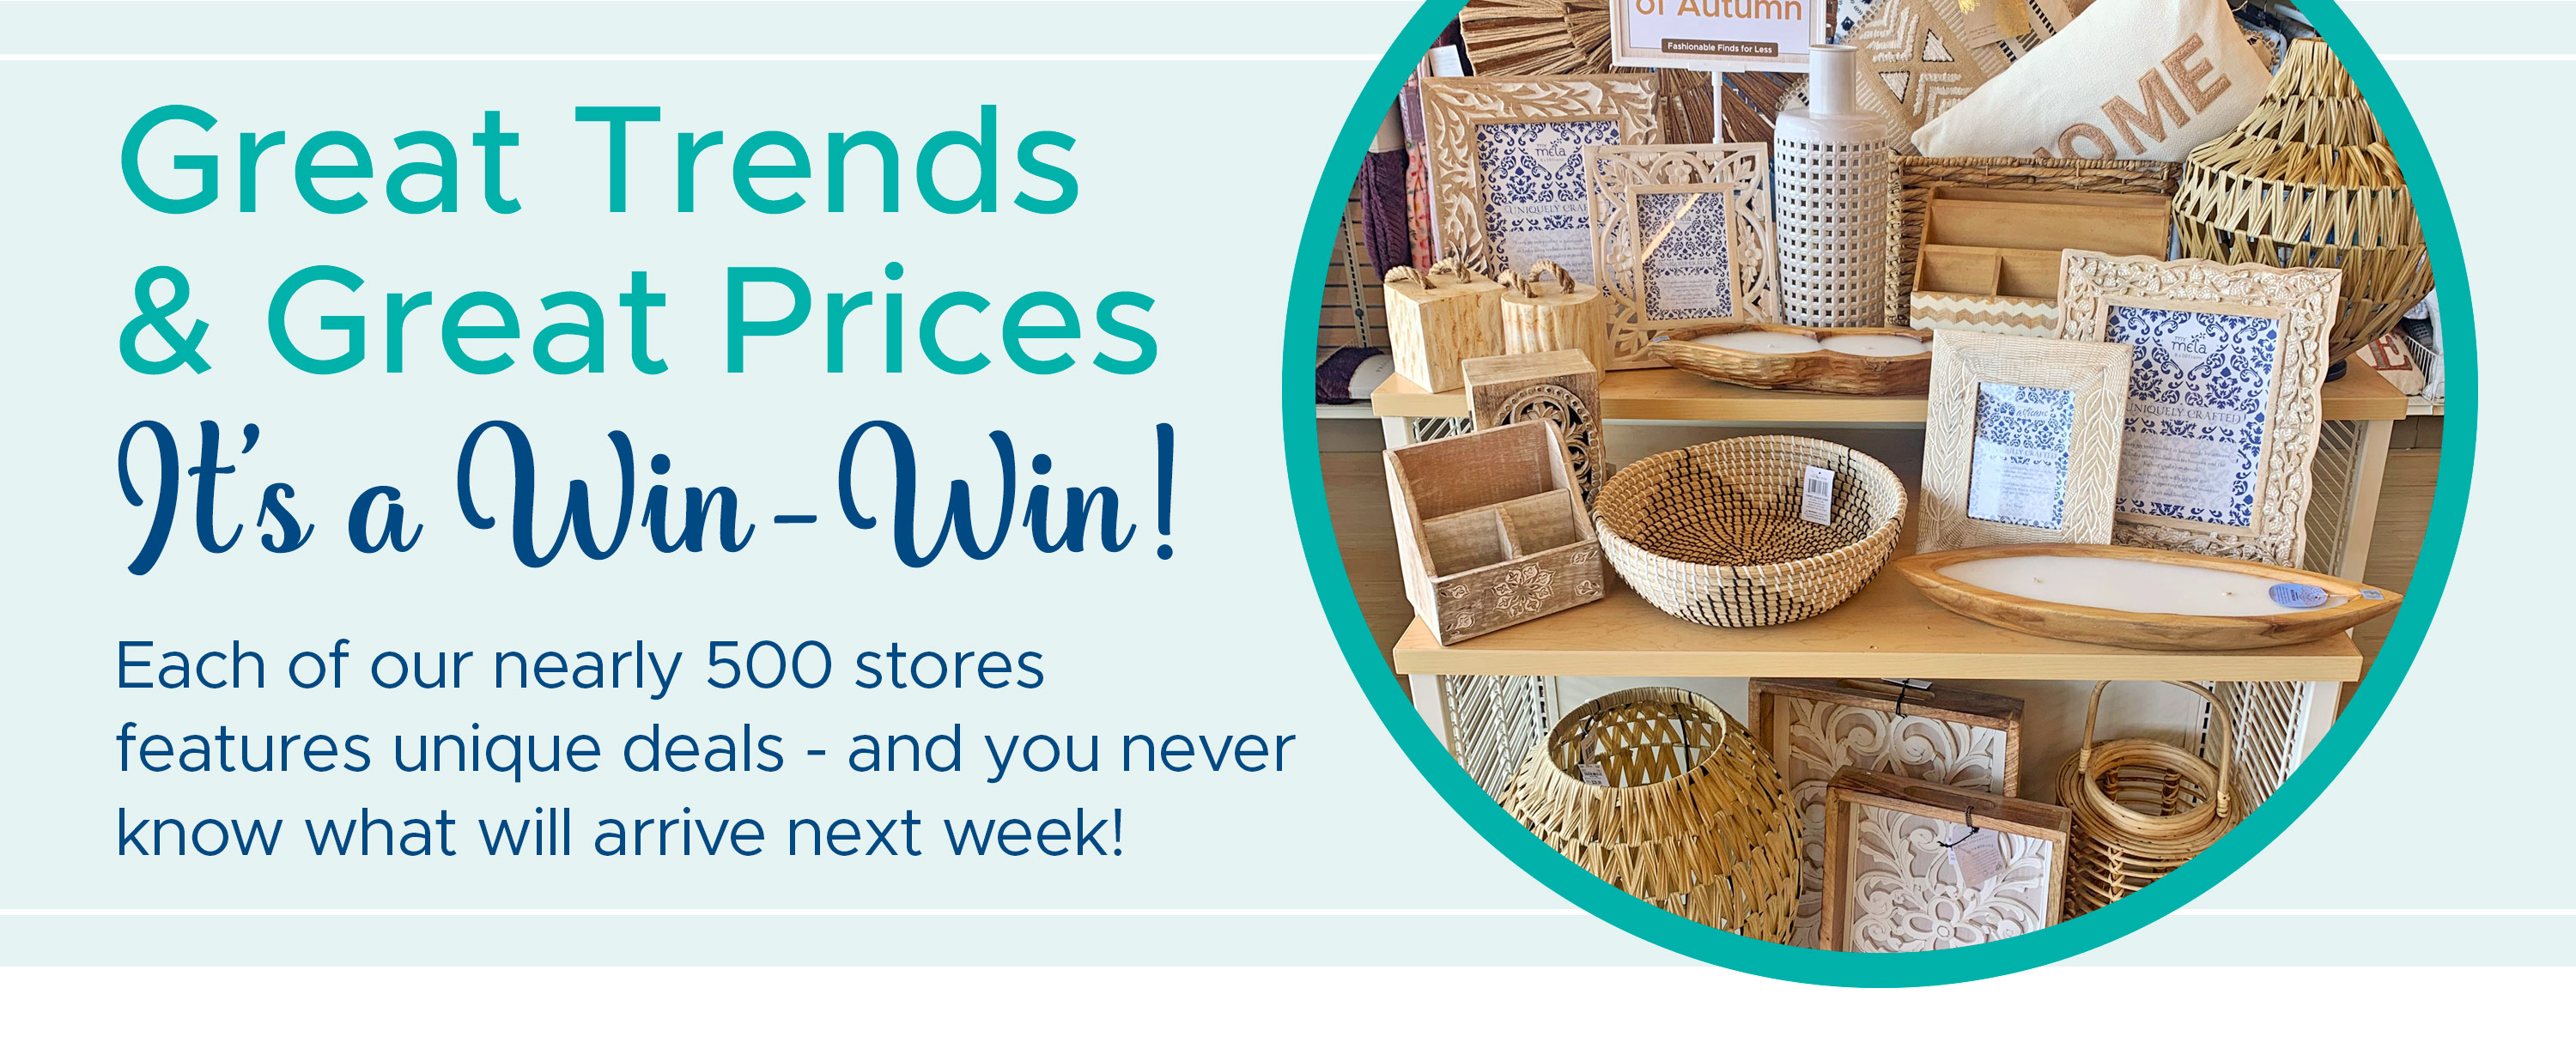 Great Trends & Great Prices, It's a Win-Win! Each of our nearly 500 stores features unique deals - and you never know what will arrive next week! Find Your Store >